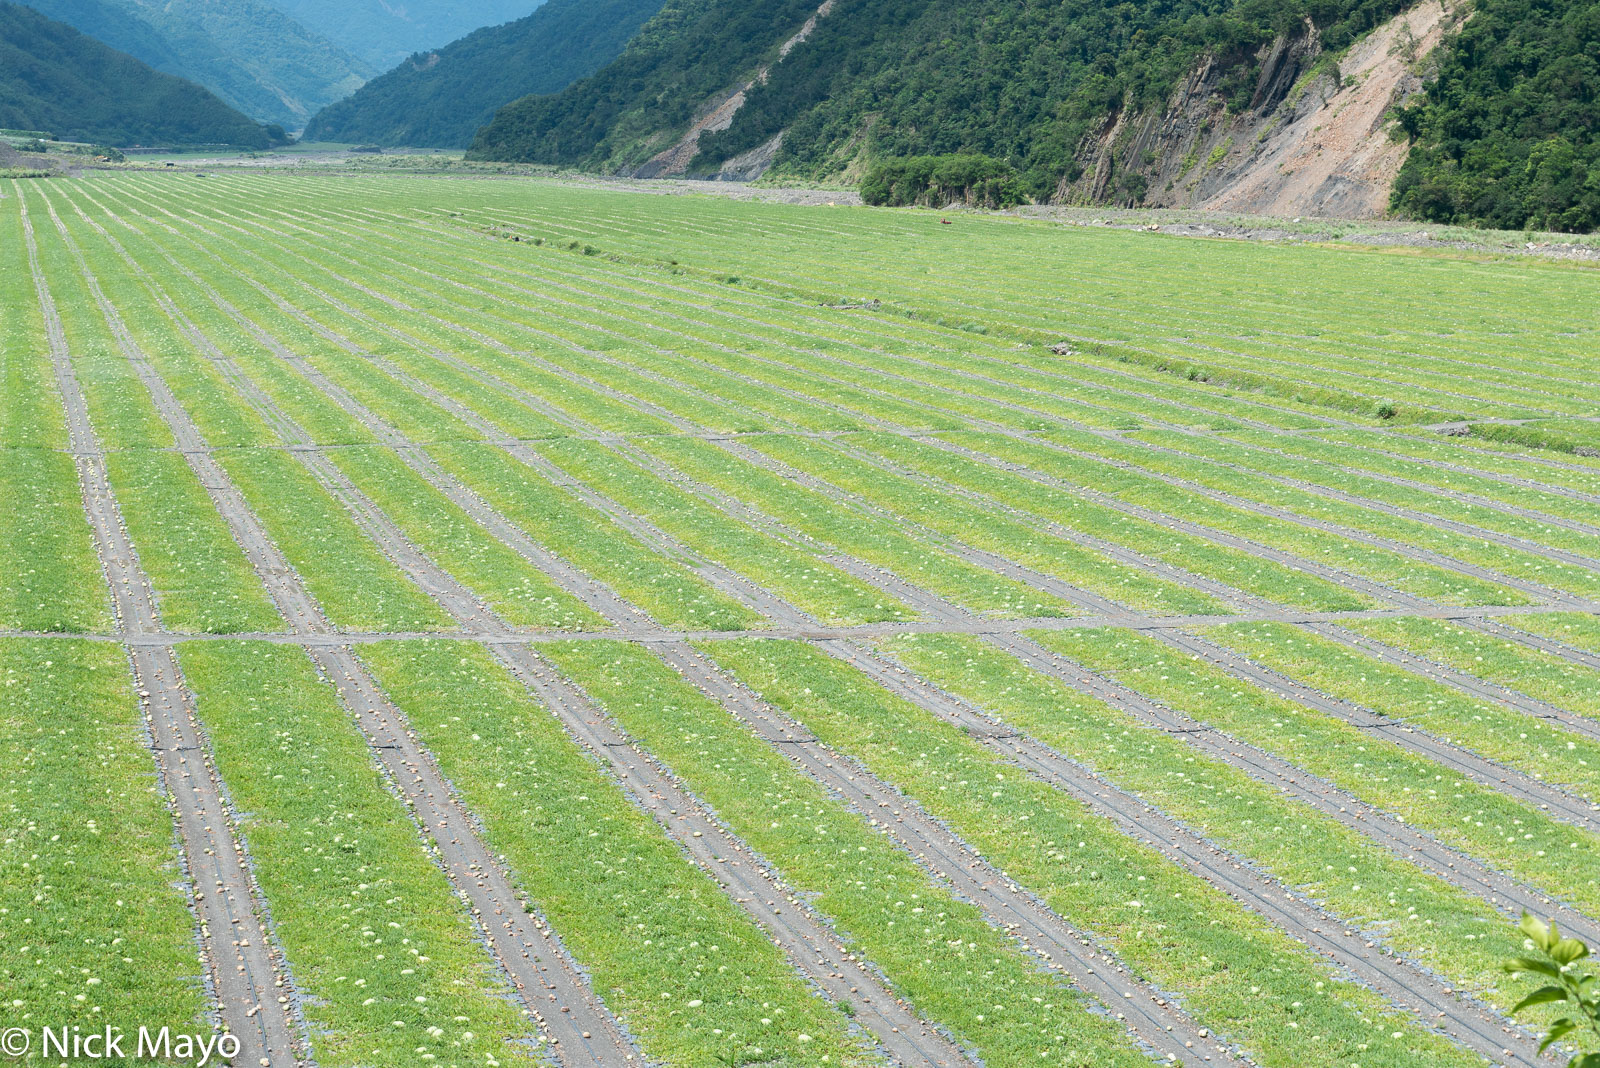 Water melon fields at Nan Shan in the Lanyang valley.